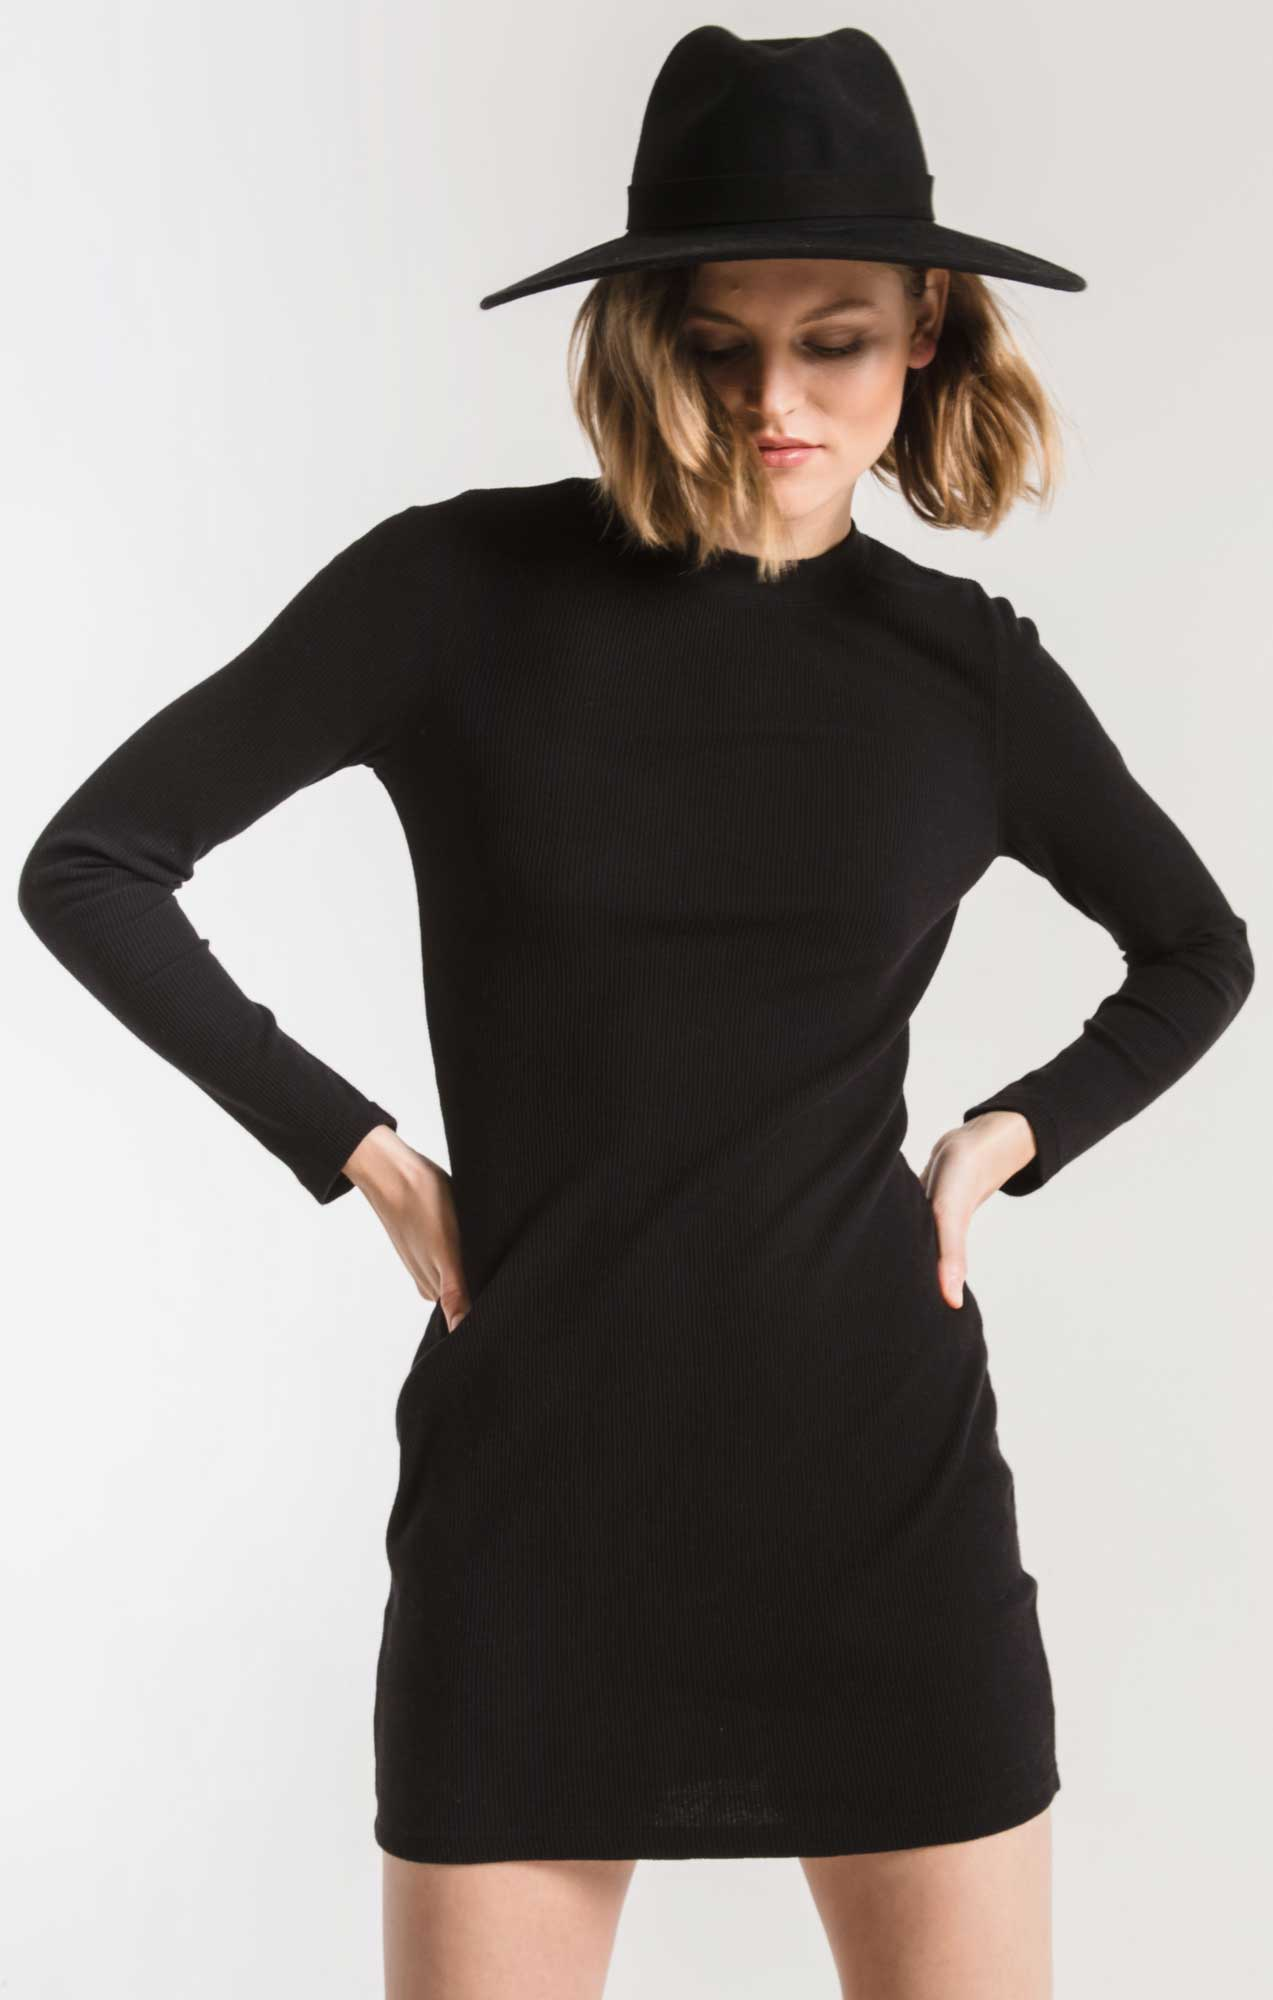 Dresses The Thermal Long Sleeve Dress Black